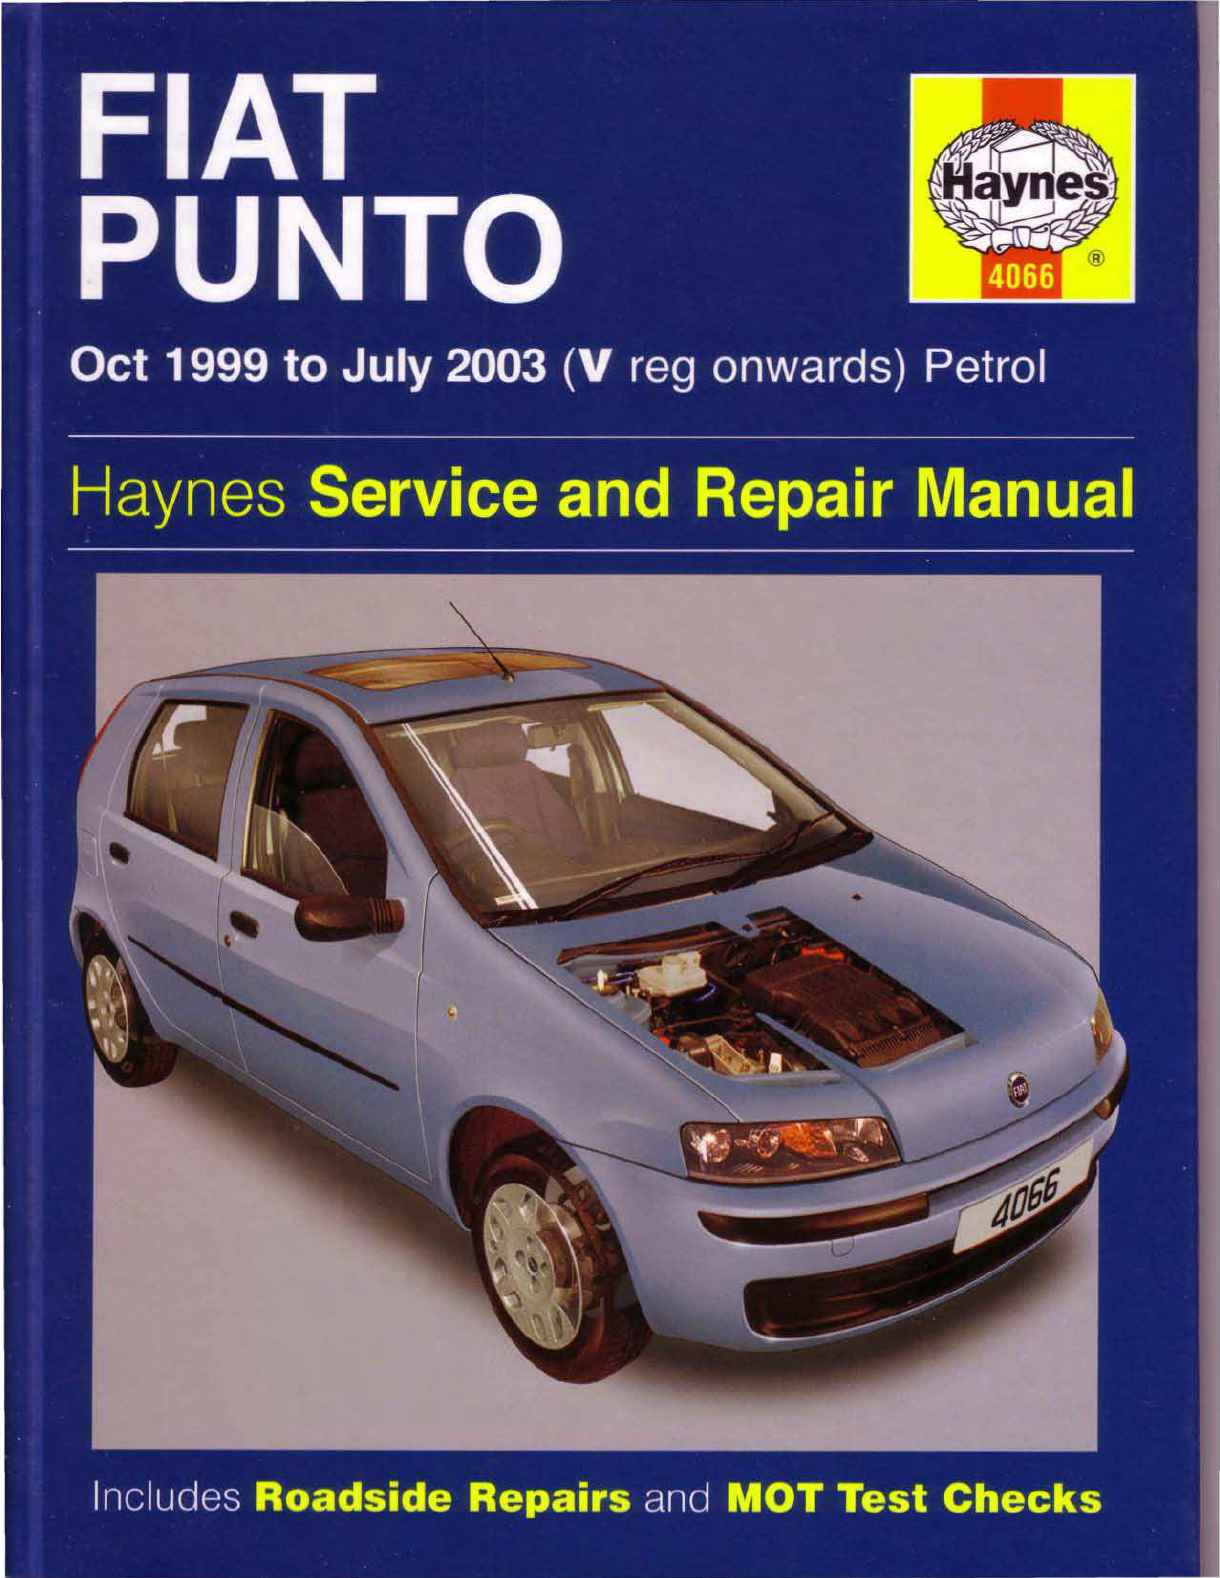 fiat punto 1999 2003 workshop manual pdf rh manuals co fiat punto 1999 owners manual fiat punto 1.2 owners manual